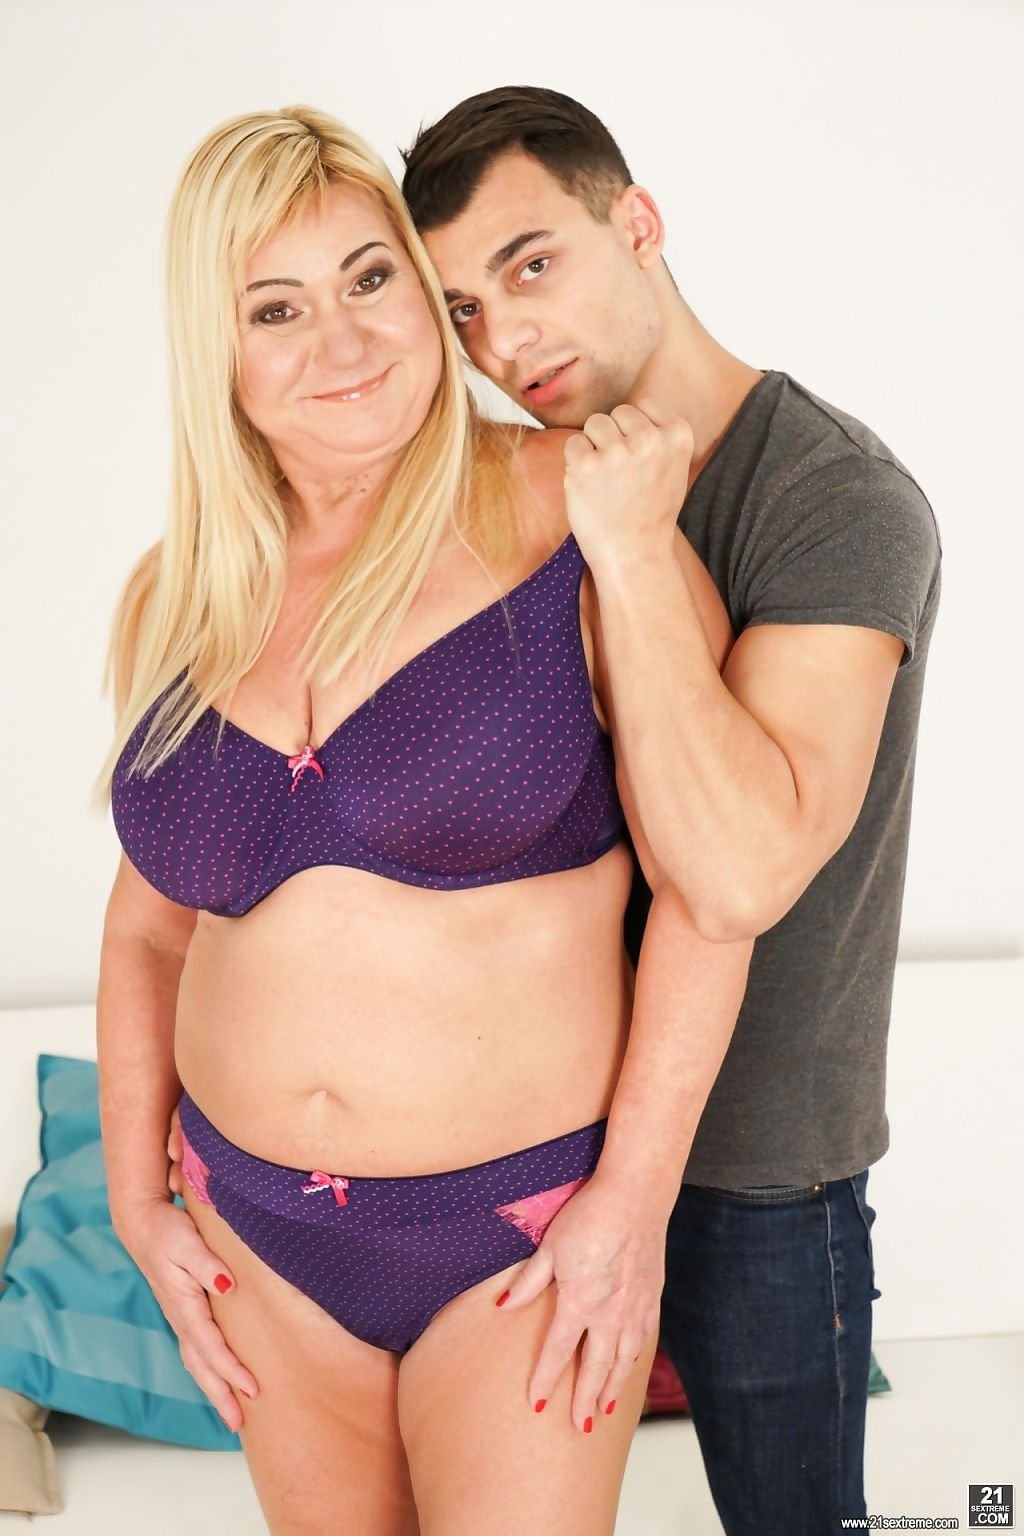 Lucky stud nick vargas gets to have fun with horny granny pam pi - part 2343